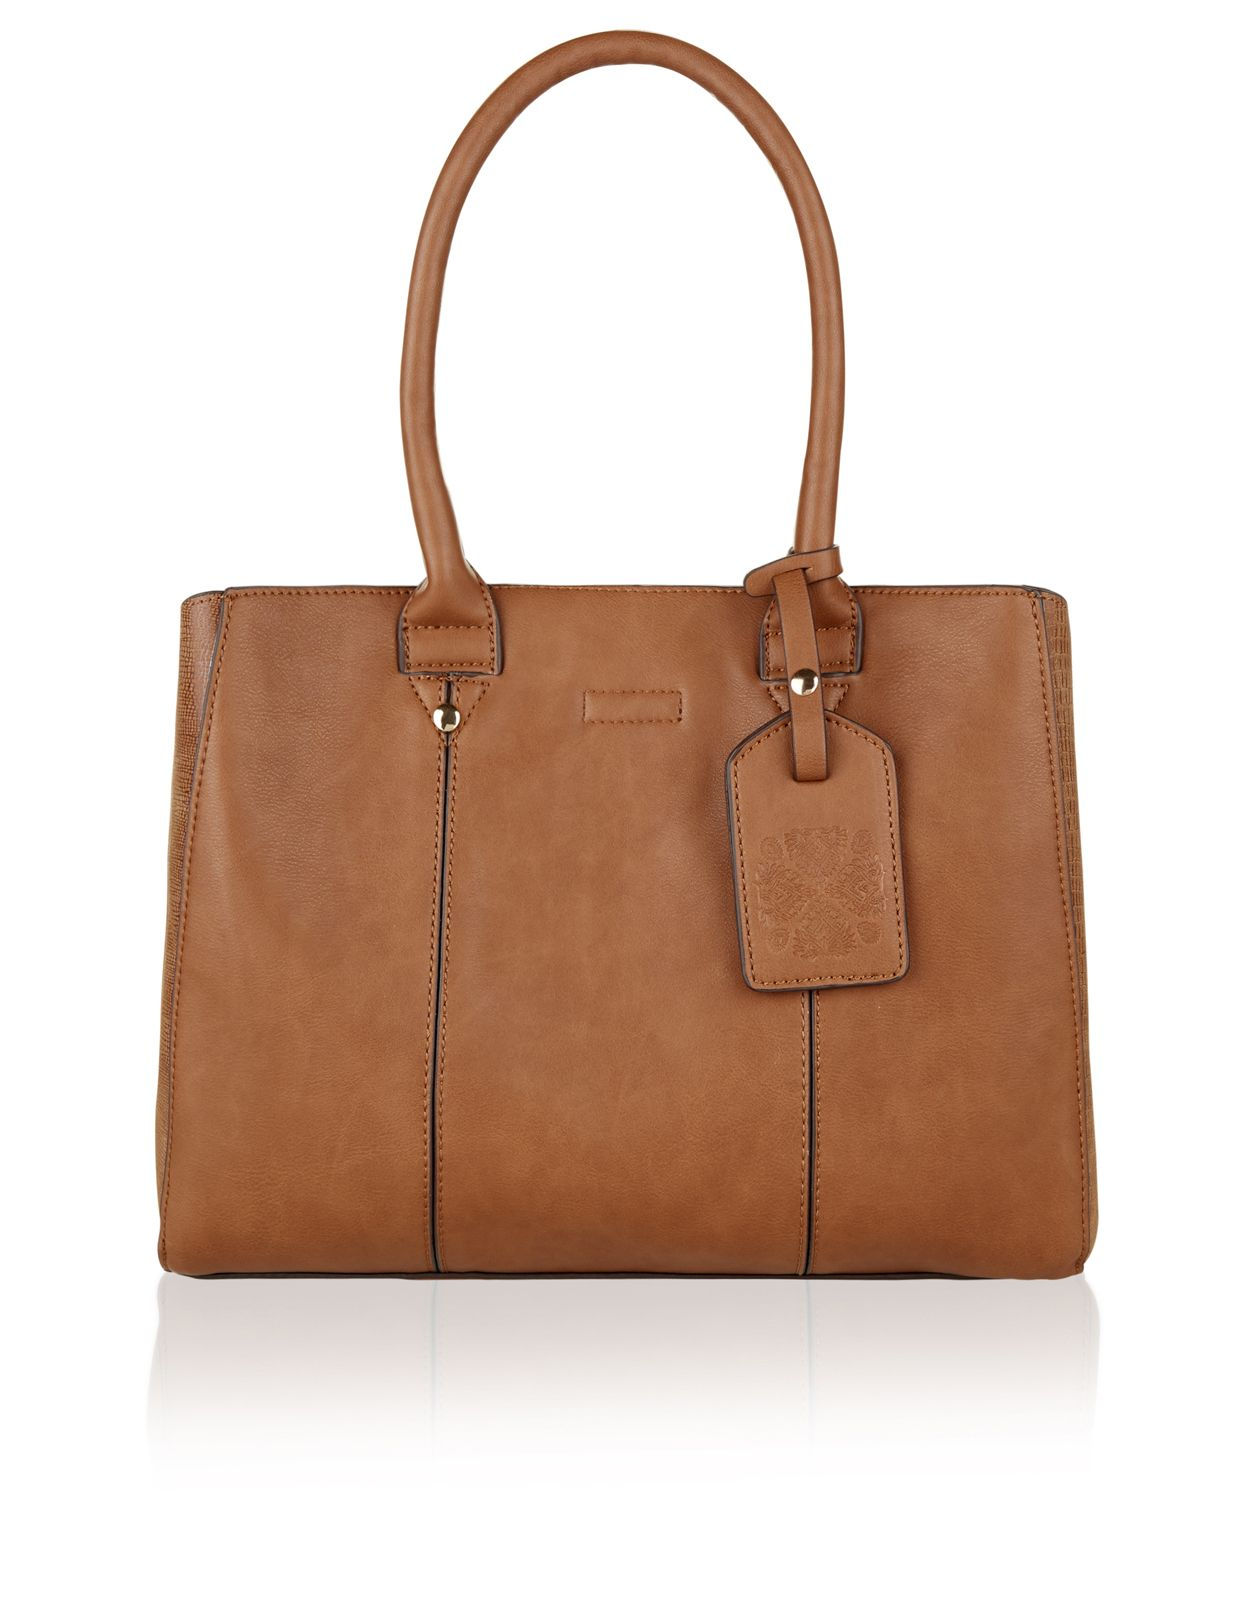 Monsoon Pandora Structured Tote Bag Brown One Size